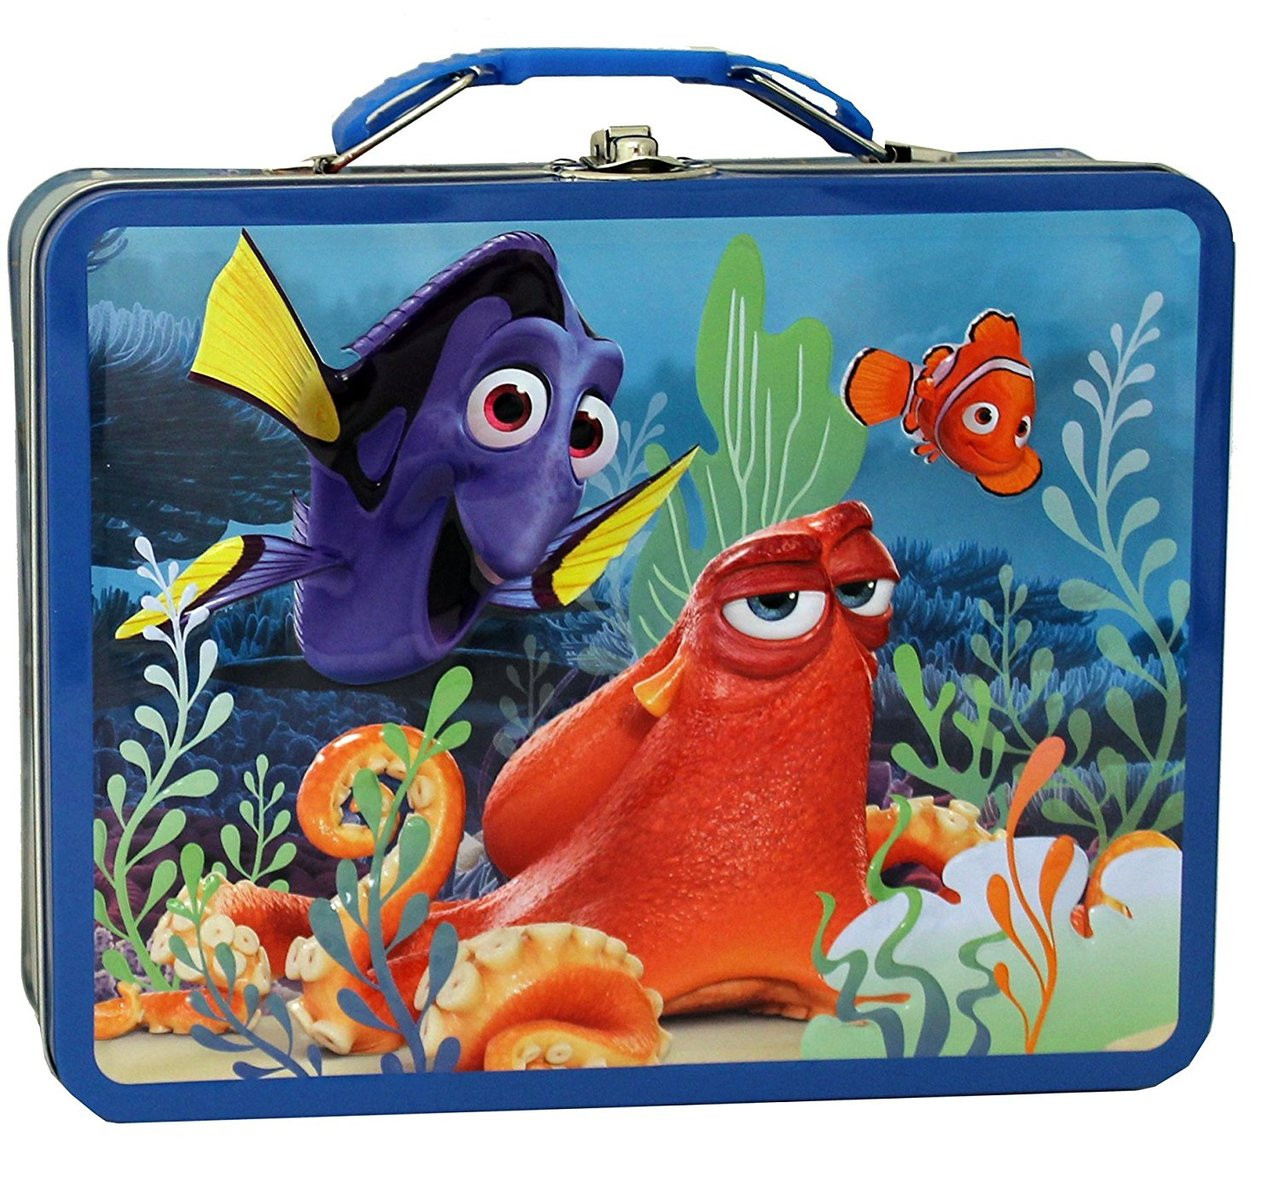 Finding Dory  Metal Tin Box - With Nemo, Dory, Octopus